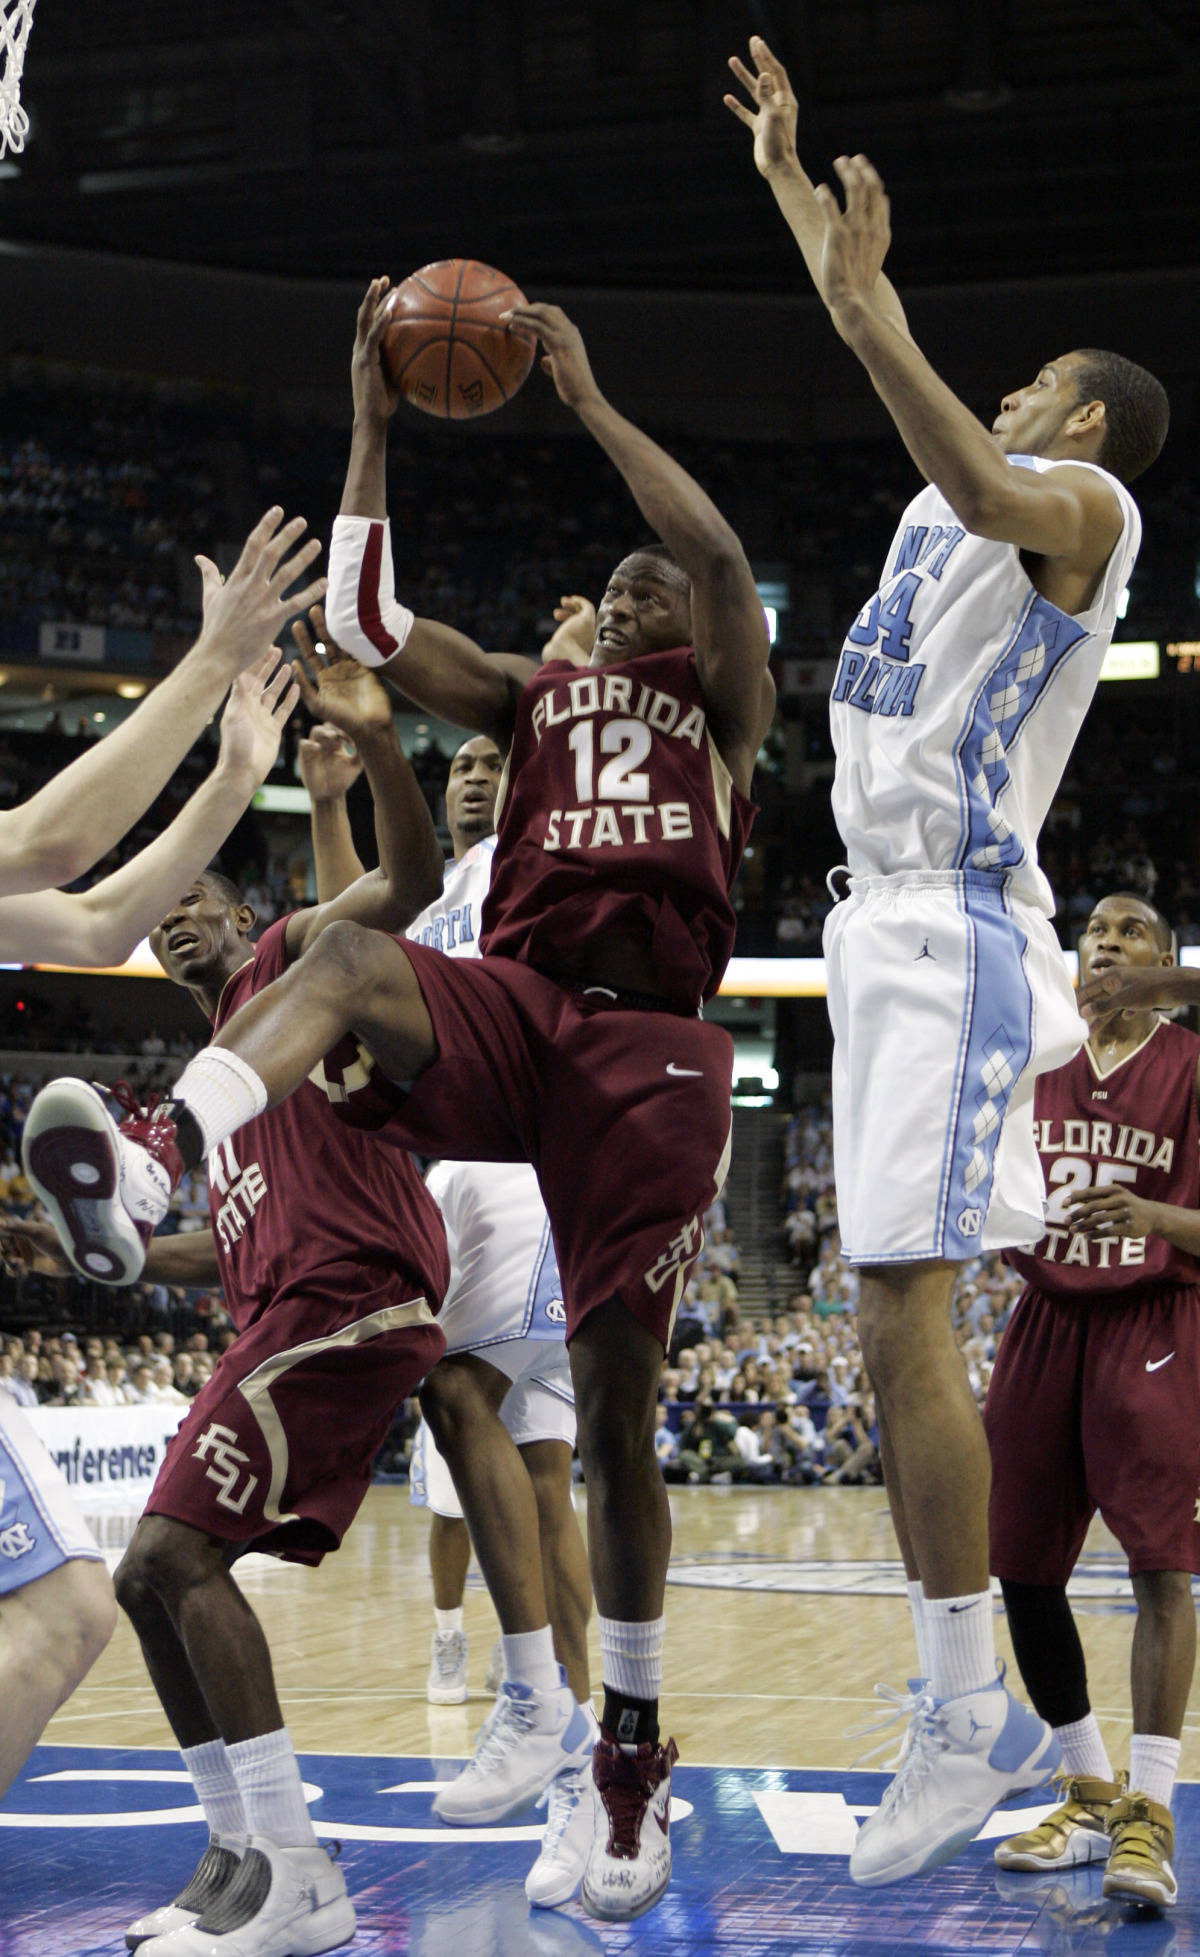 Florida State's Al Thornton (12) leaps for the basket under pressure from North Carolina's Brandan Wright (34) during a second round game of the Men's Atlantic Coast Conference basketball tournament in Tampa, Fla., Friday, March 9, 2007. (AP Photo/David J. Phillip)